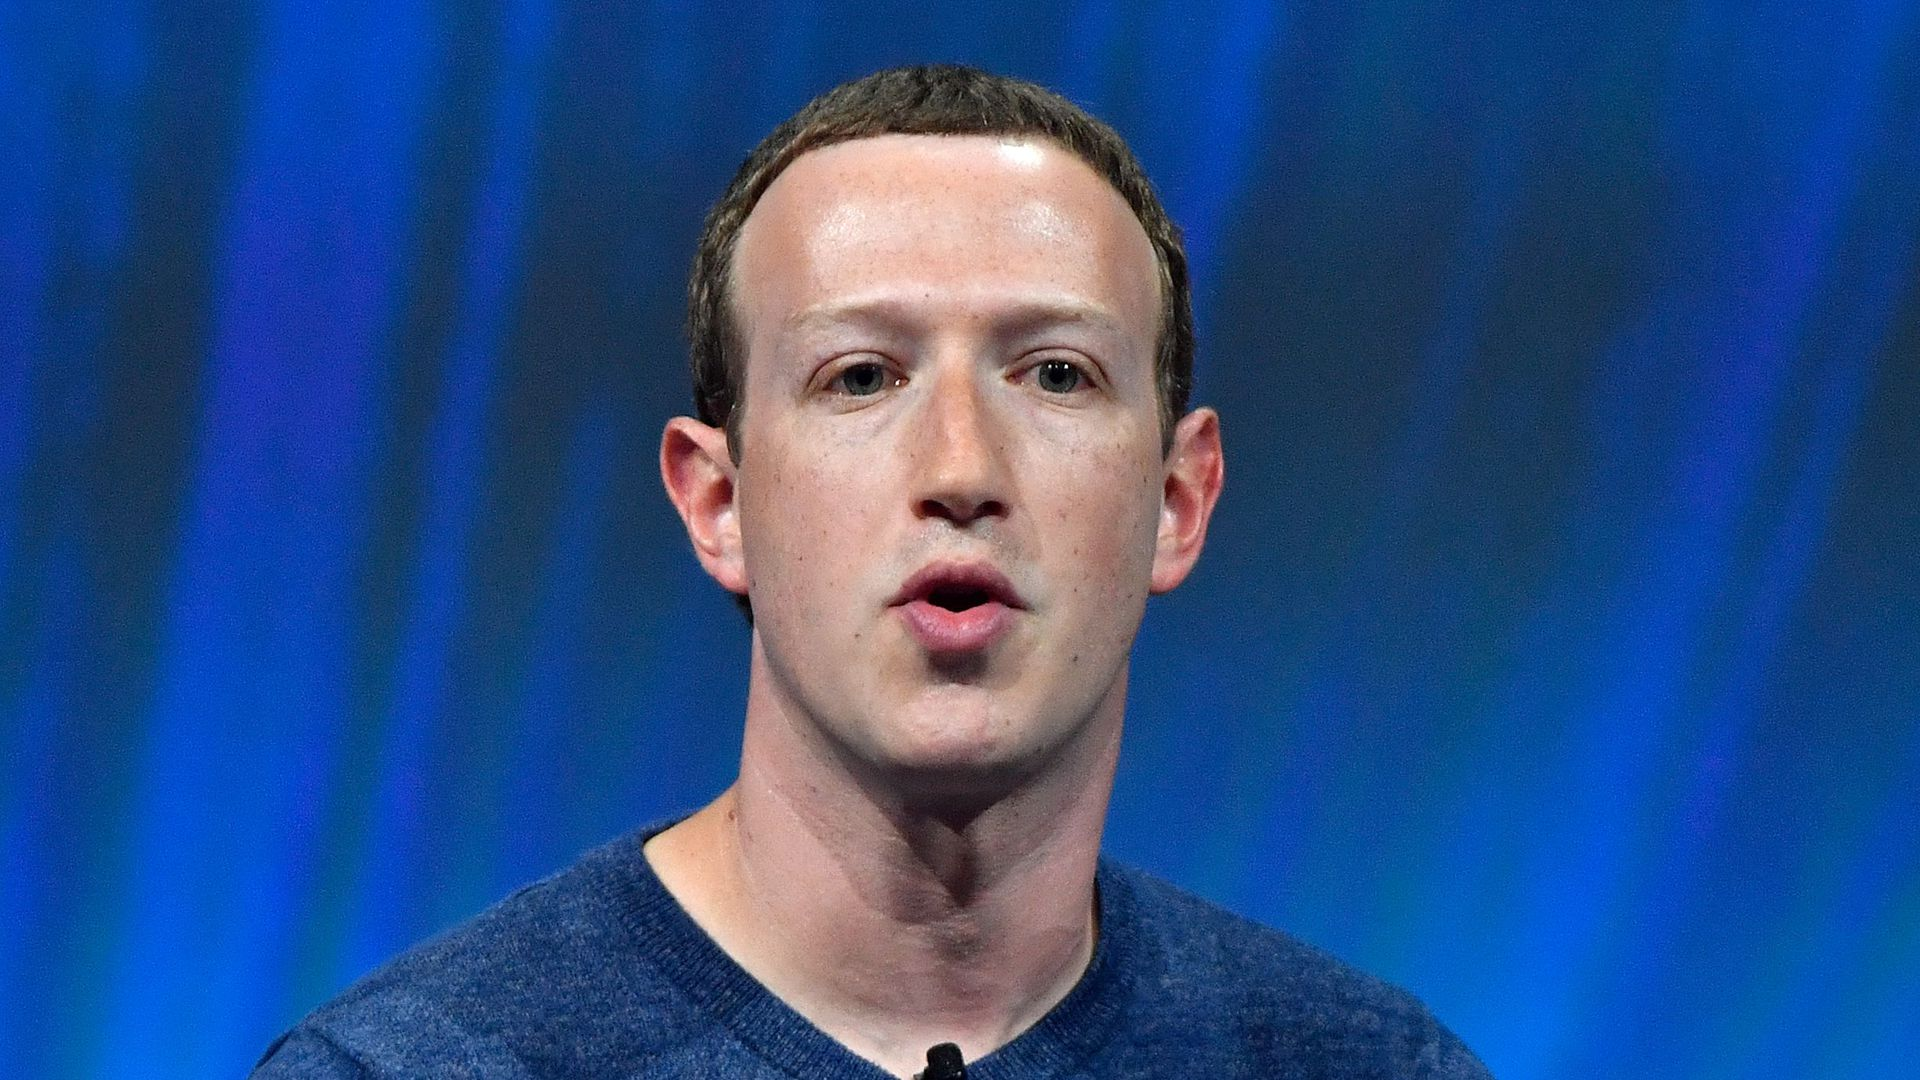 Zuckerberg addresses new report on breached Facebook user data